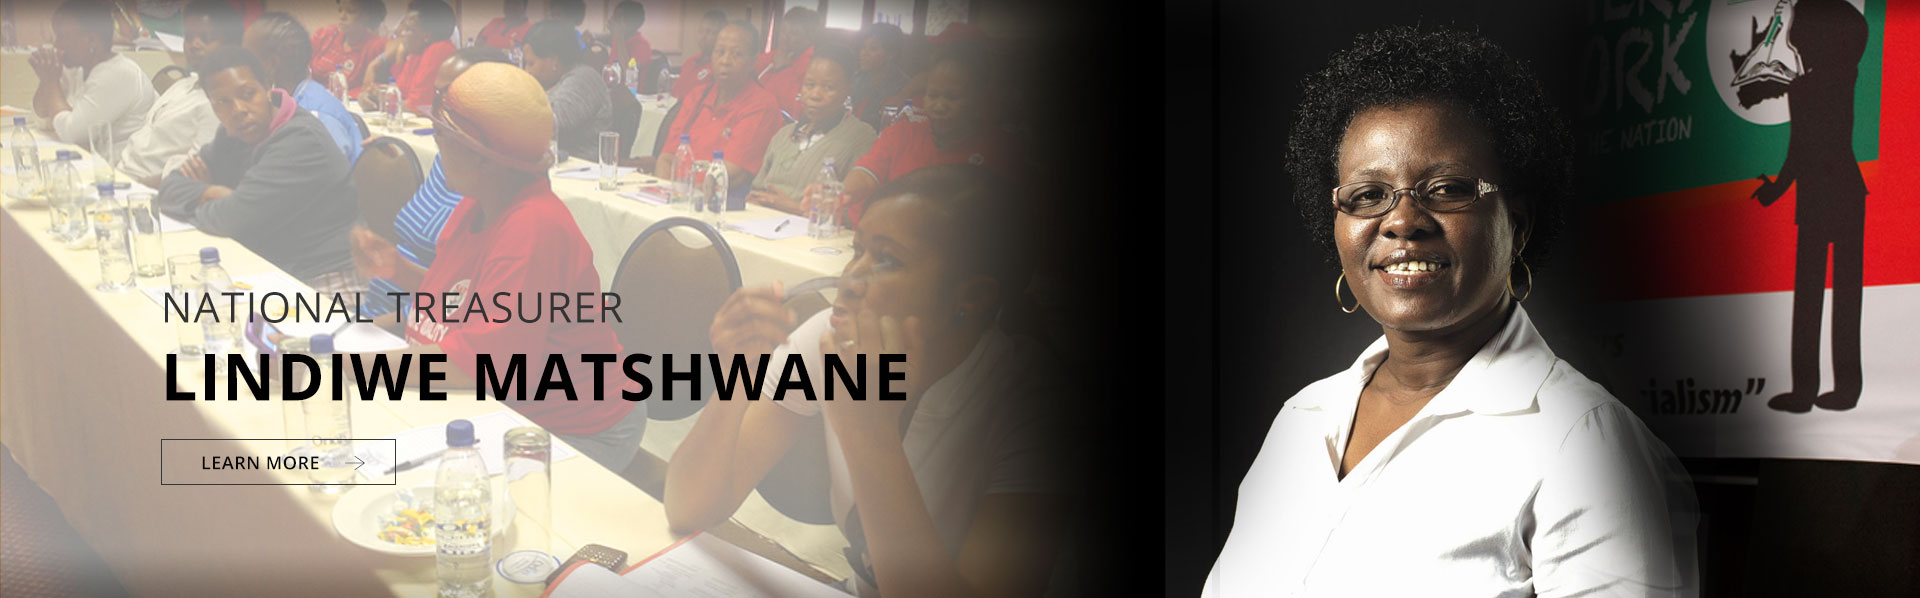 National Treasurer: Cde Lindiwe Matshwane